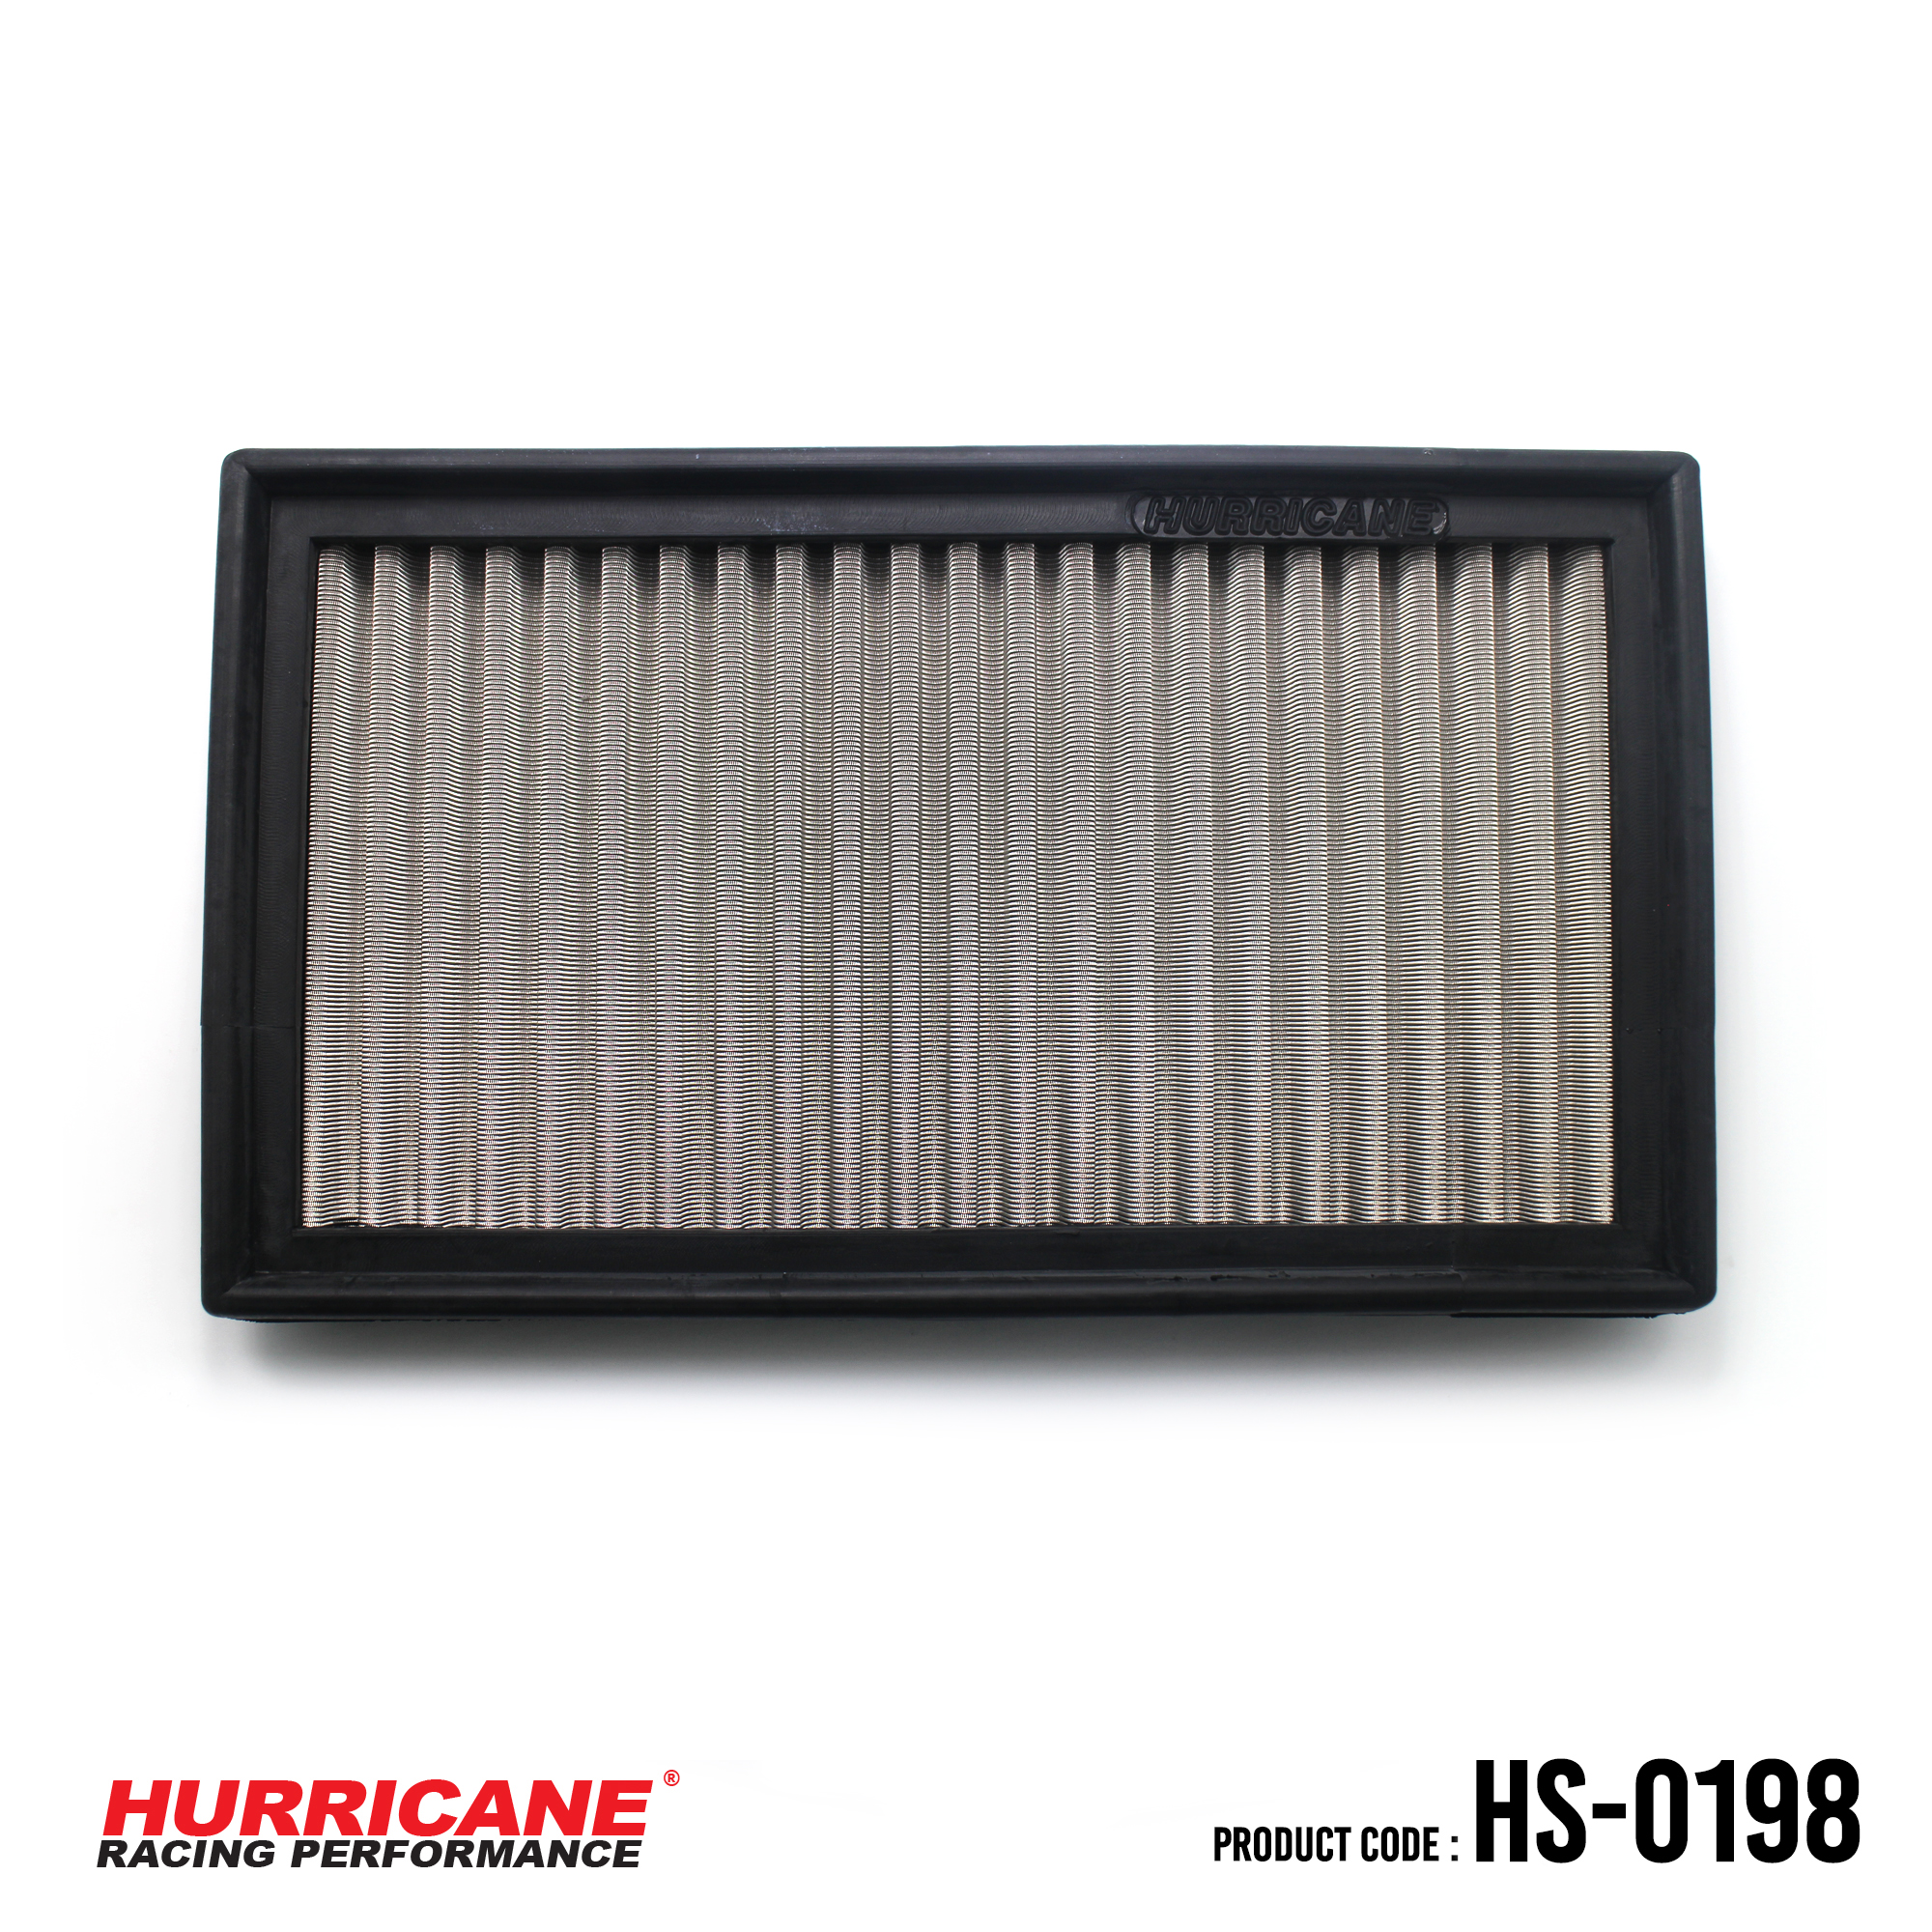 HURRICANE STAINLESS STEEL AIR FILTER FOR HS-0198 BMW